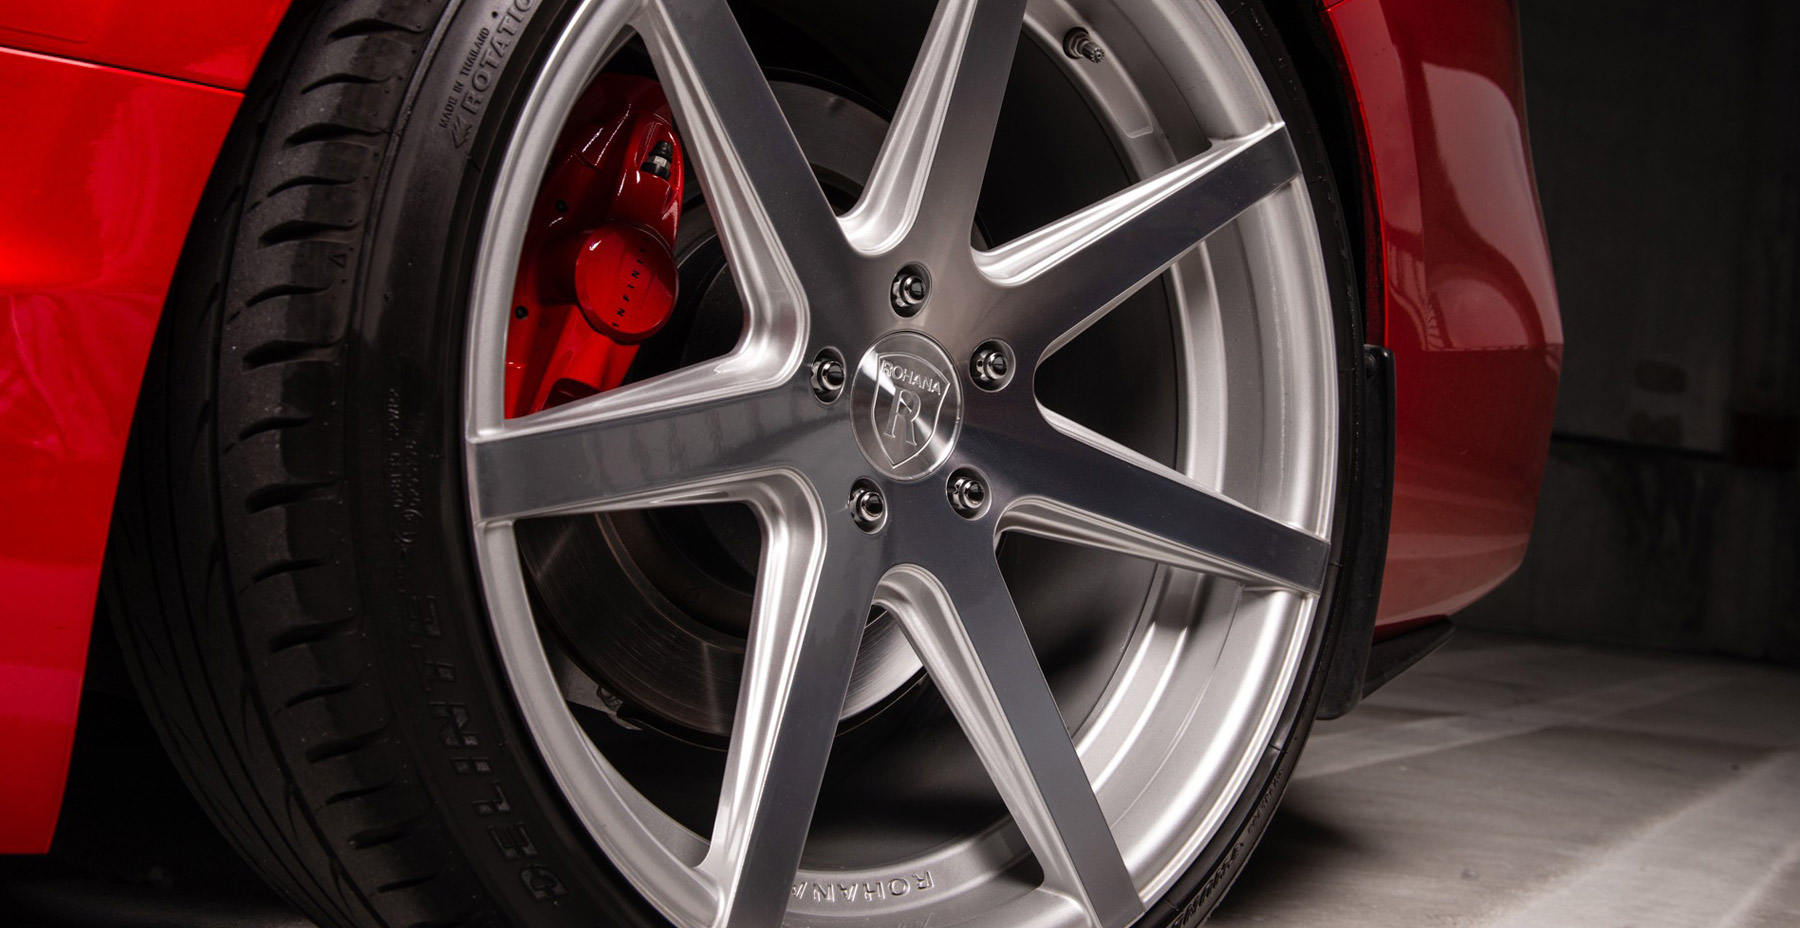 Red Infiniti Q50 x Rohana RC7 Wheels (Finished in Machined Silver)